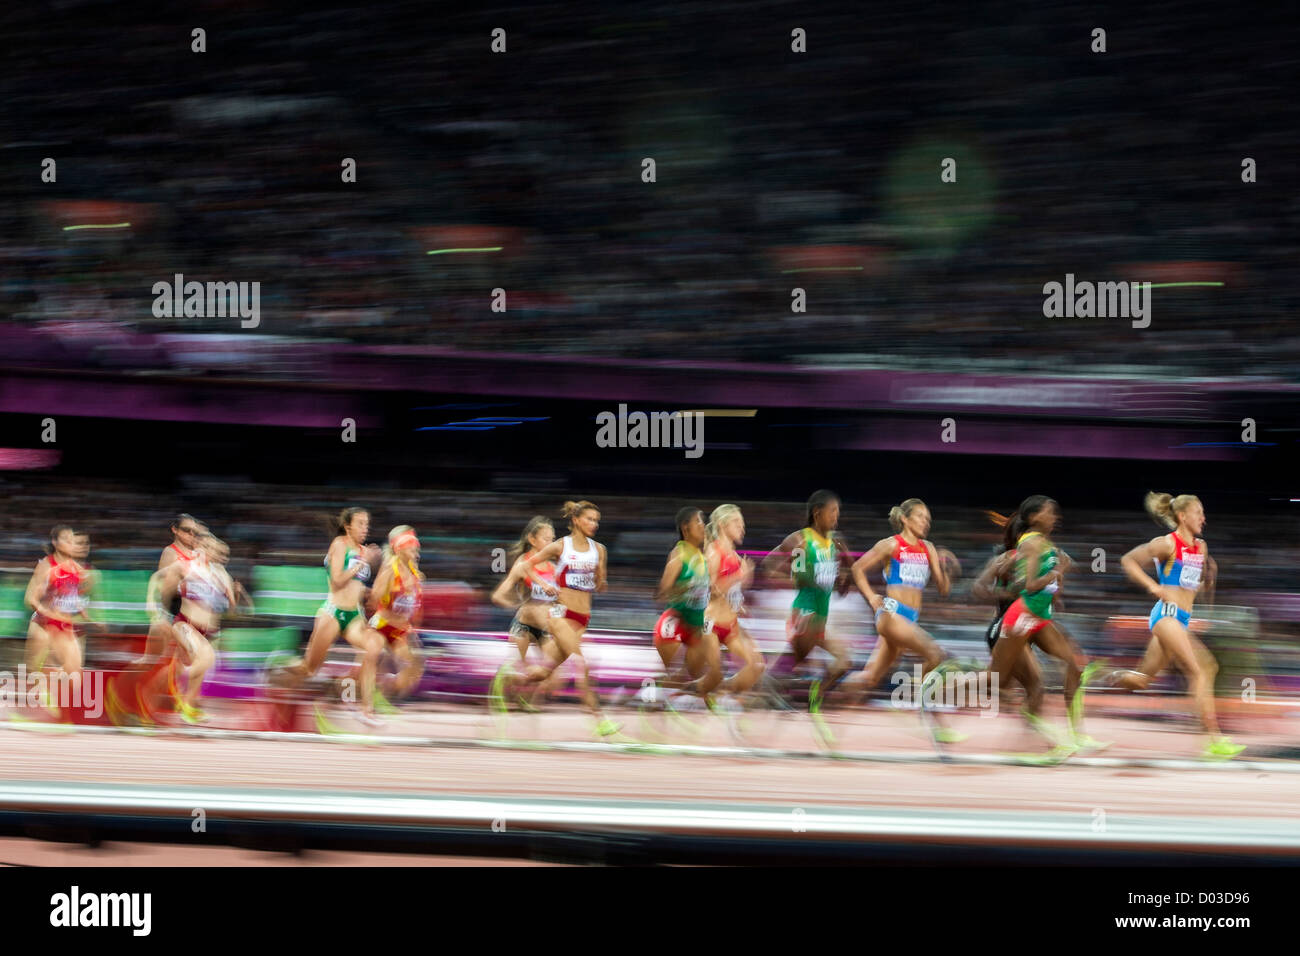 Blurred action of women competing in the Women's 3000m Steeplechase at the Olympic Summer Games, London 2012 Stock Photo